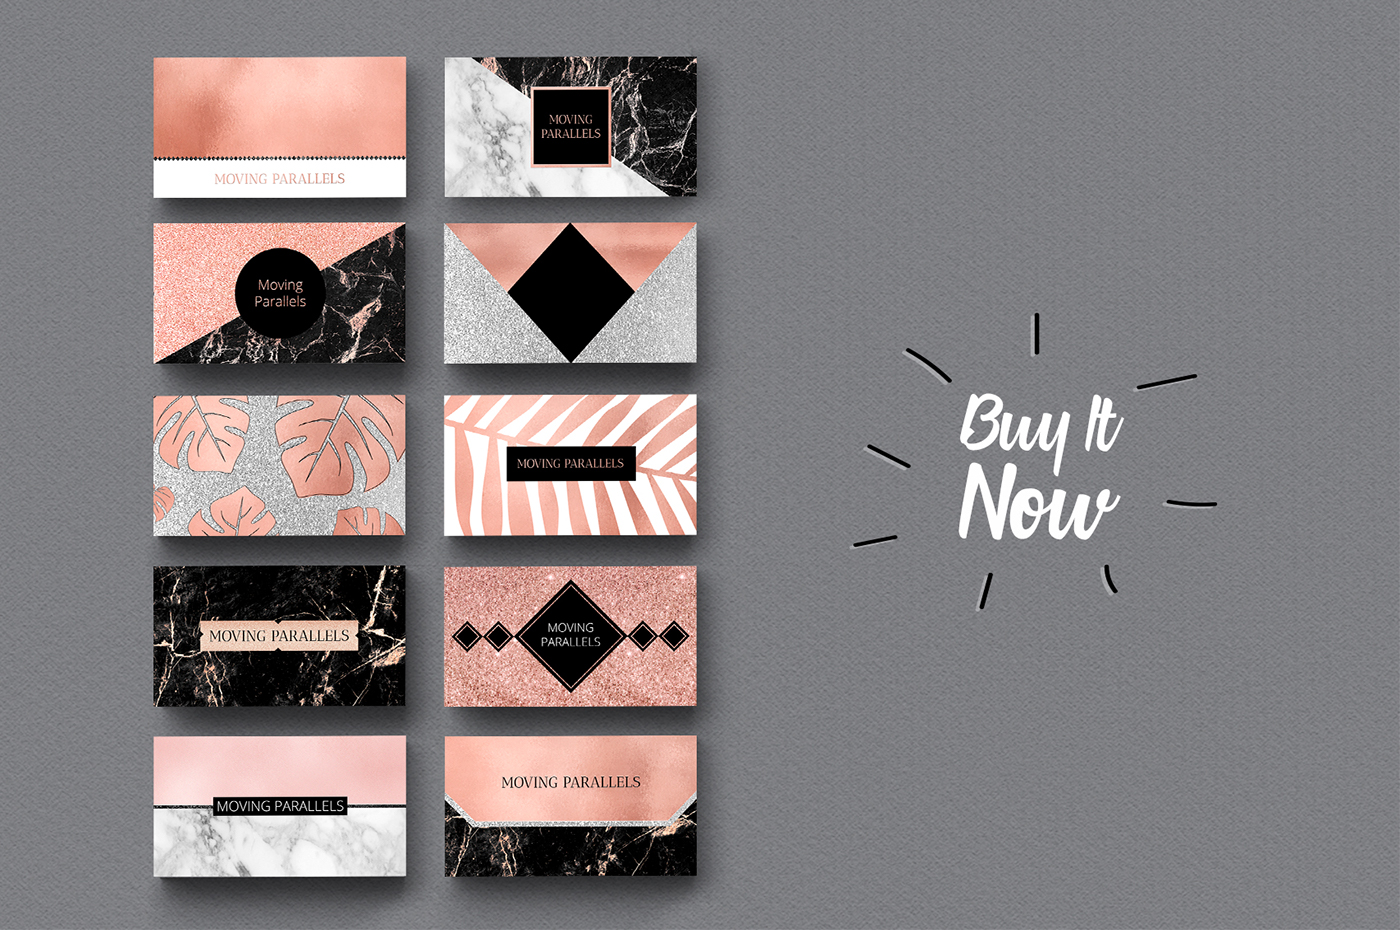 rose gold business cards bundle only for 18 extended license - Rose Gold Business Cards